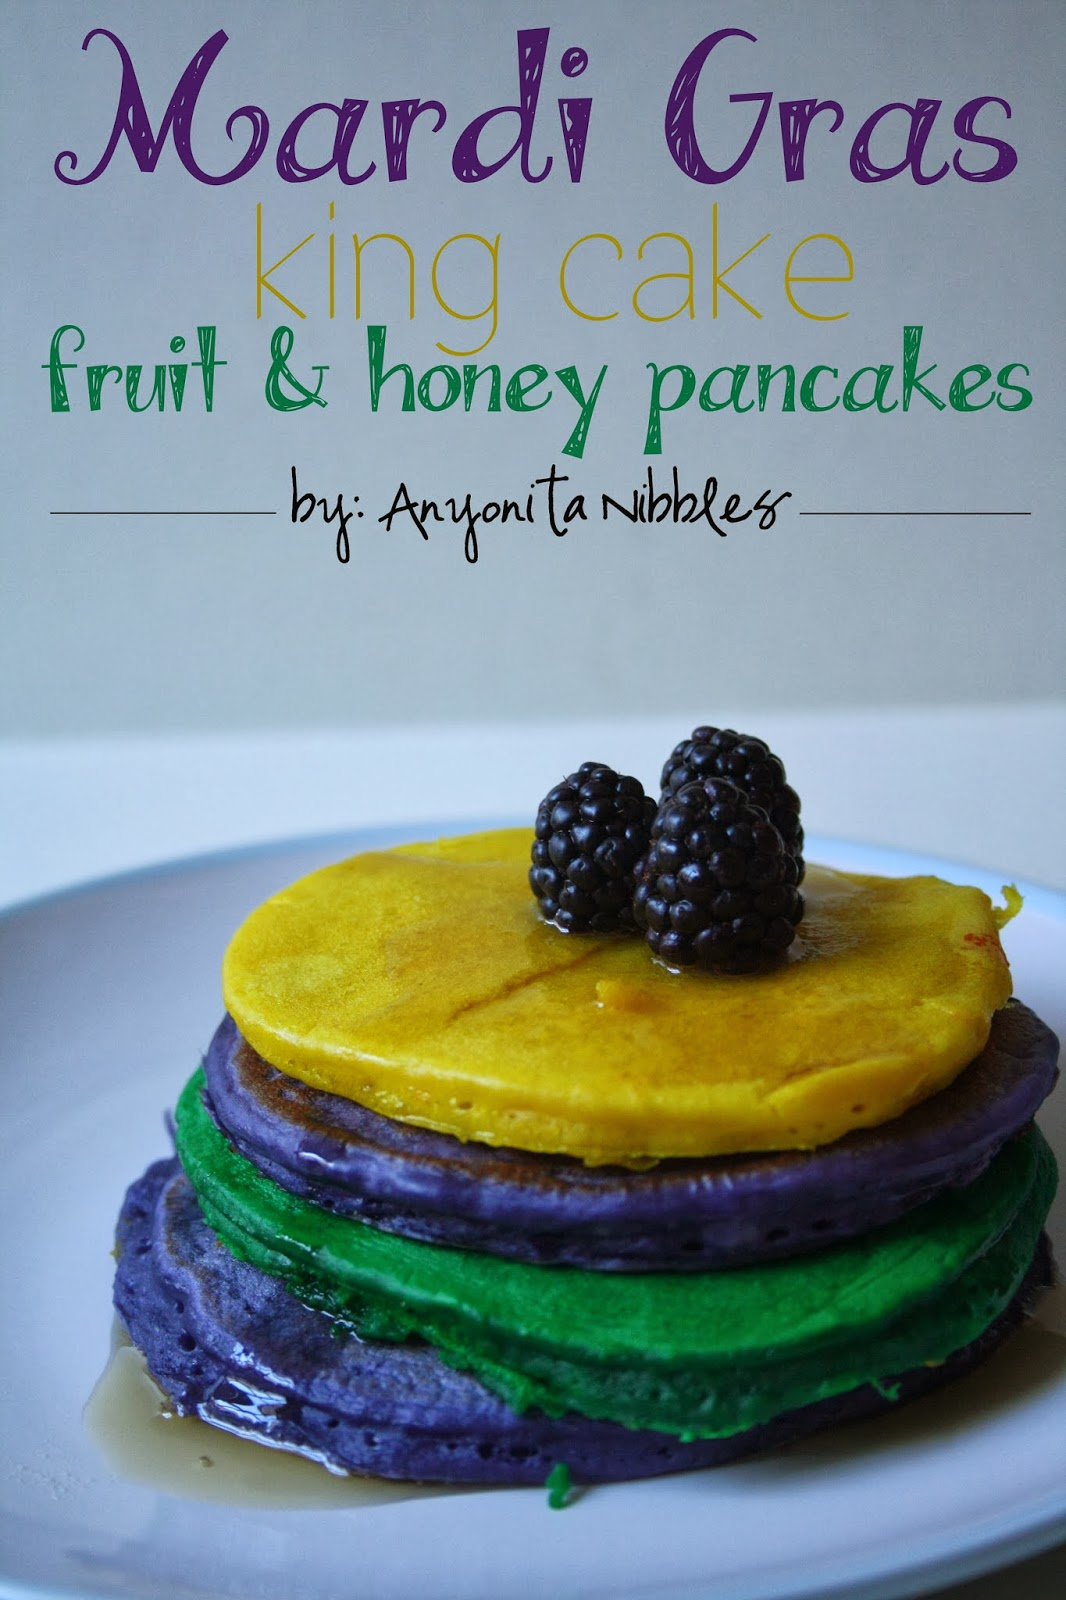 Mardi Gras King Cake Fruit & Honey Pancakes. I love how vibrant & festive these are! They're dead easy to make, too!